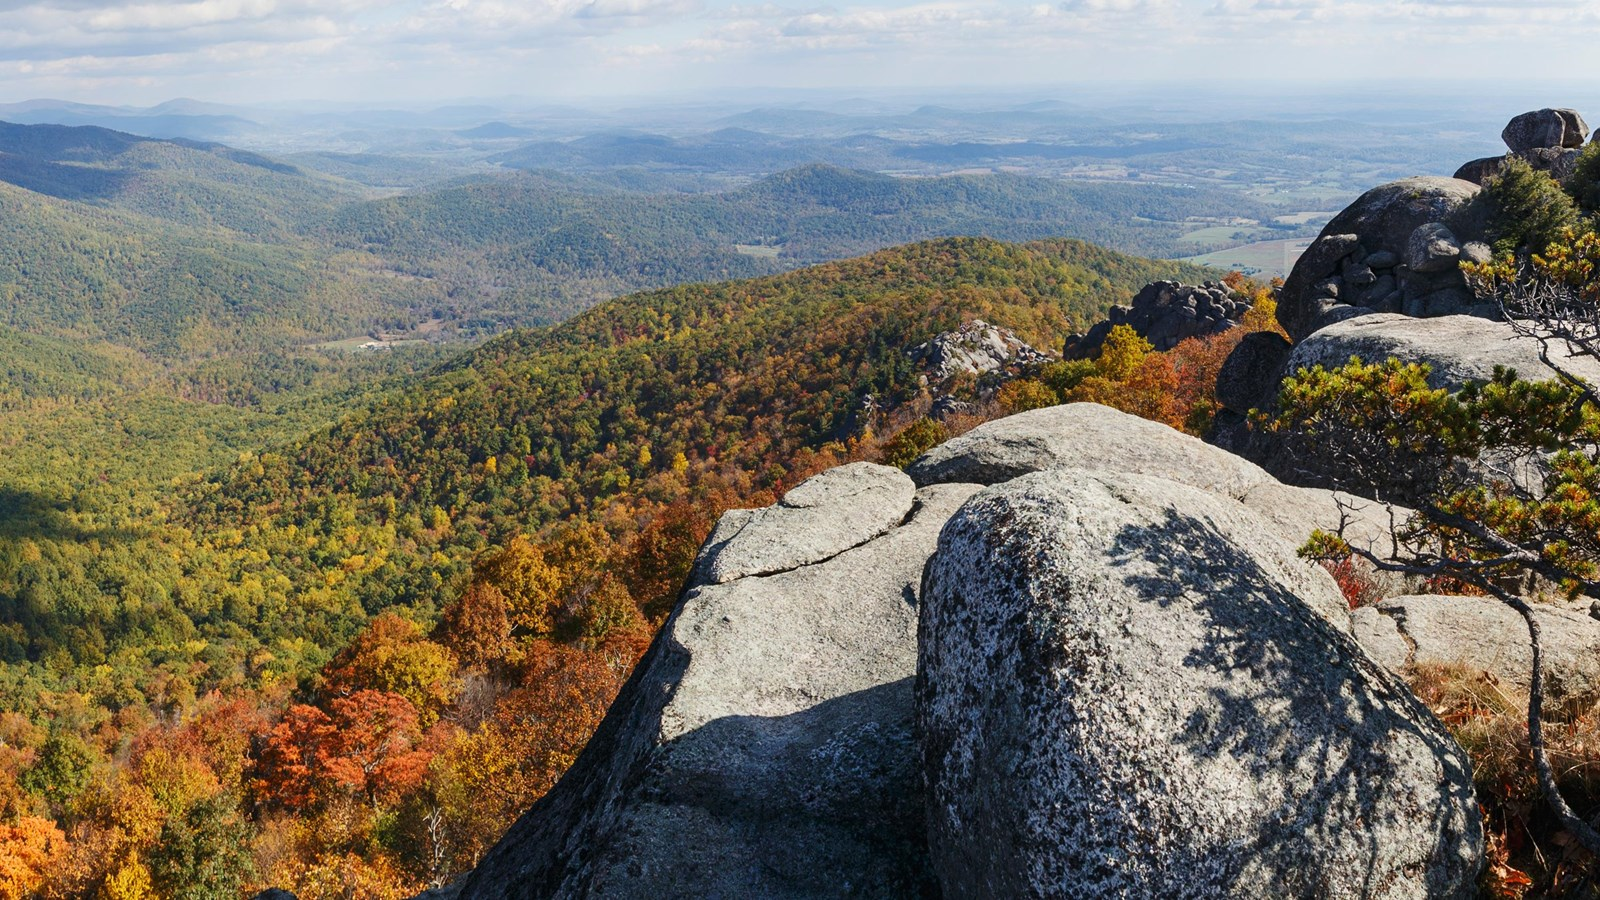 A rock outcrop overlooks mountain layers below, exploding with fall colors: red, orange, and yellow